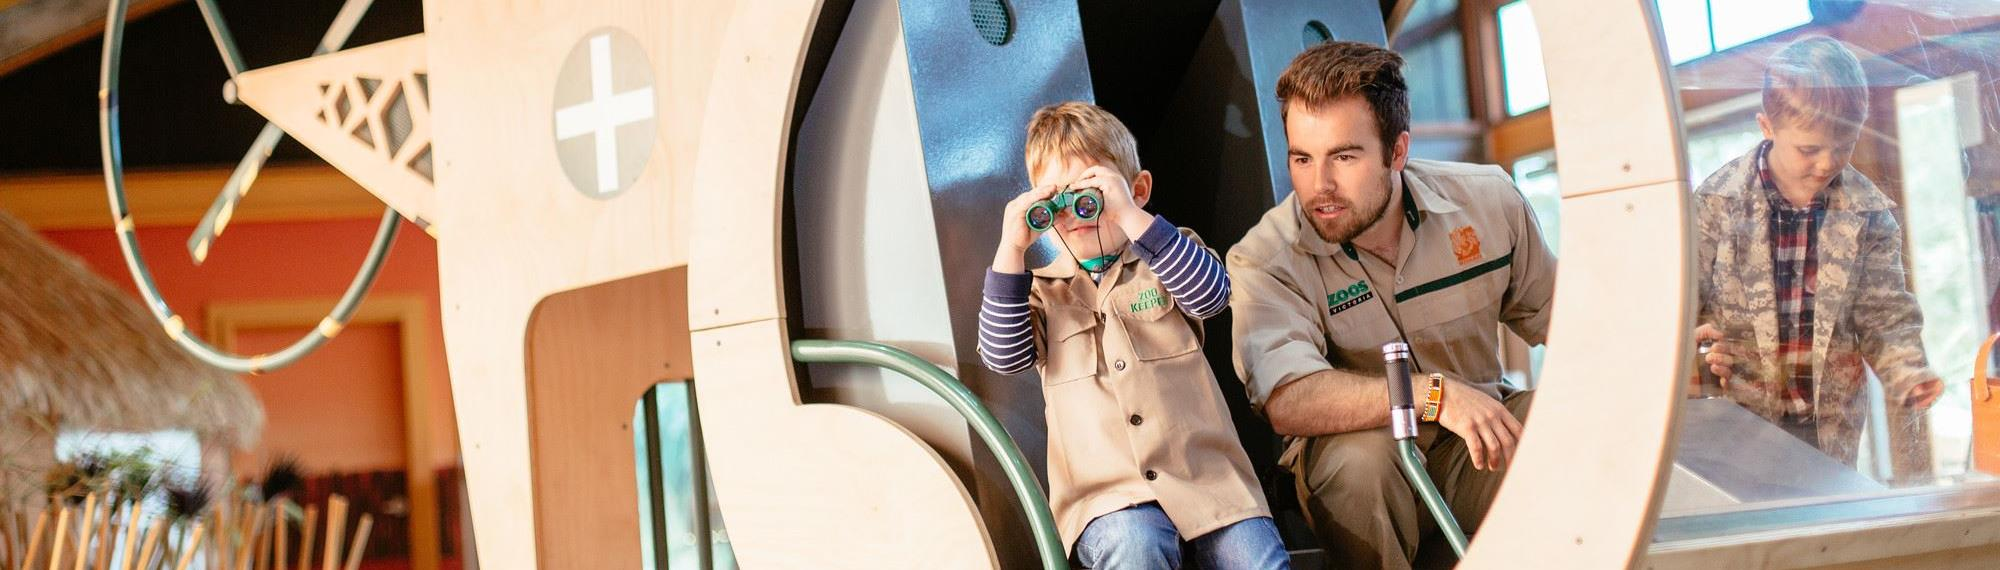 Child looking through binoculars with safari guide playing in a wooden helicopter in Ranger Kids indoor play centre.